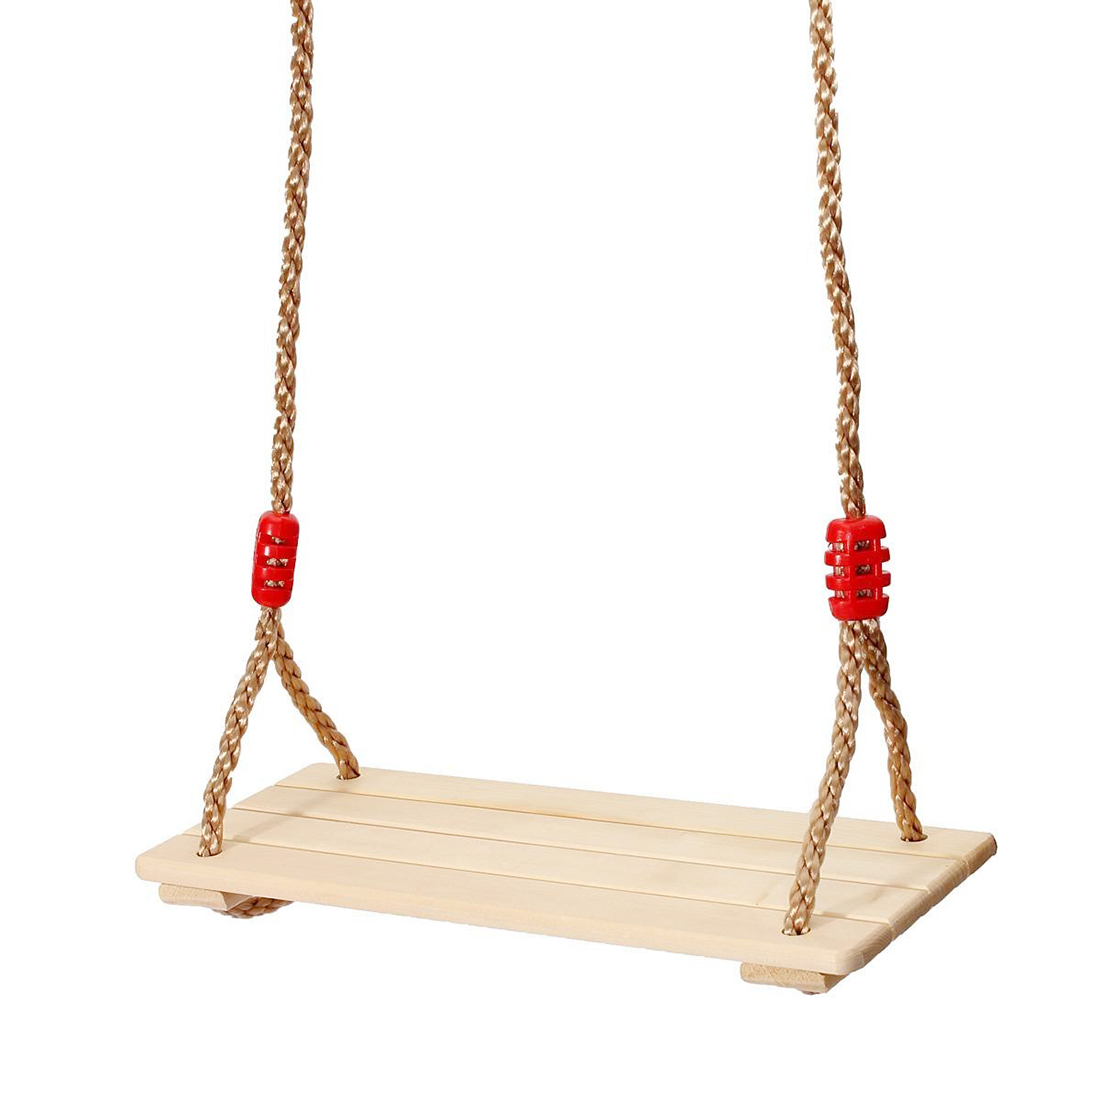 Adults and children Swing Wooden Swing with Rope Toys for Children Outdoor Garden Swings children toy swing outdoor indoor wood ladder rope playground games for kids climbing rope swing wooden 5 rungs pe rope